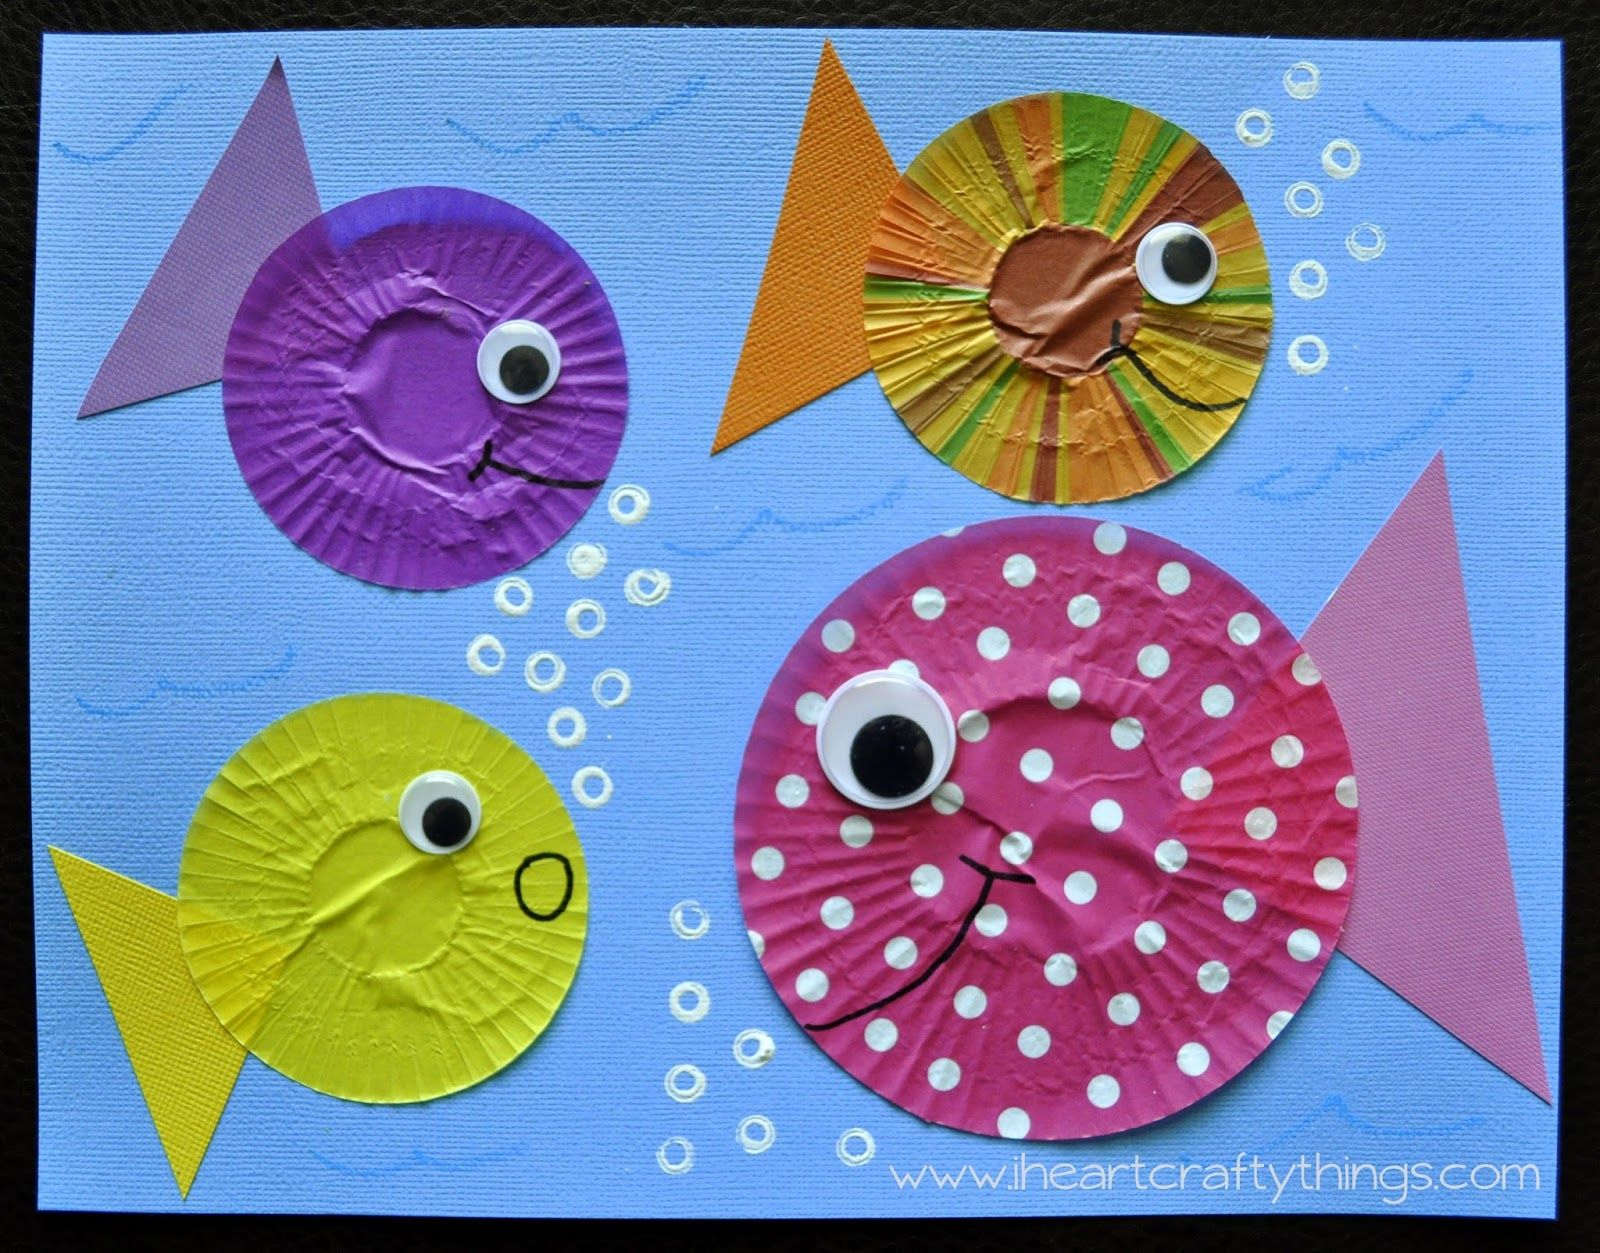 15 cupcake liner crafts for kids cupcake liners fish crafts and use left over cupcake liners to make this fun fish kids craft great summer kids craft cupcake liner crafts fish craft for kids and ocean crafts for kids jeuxipadfo Gallery